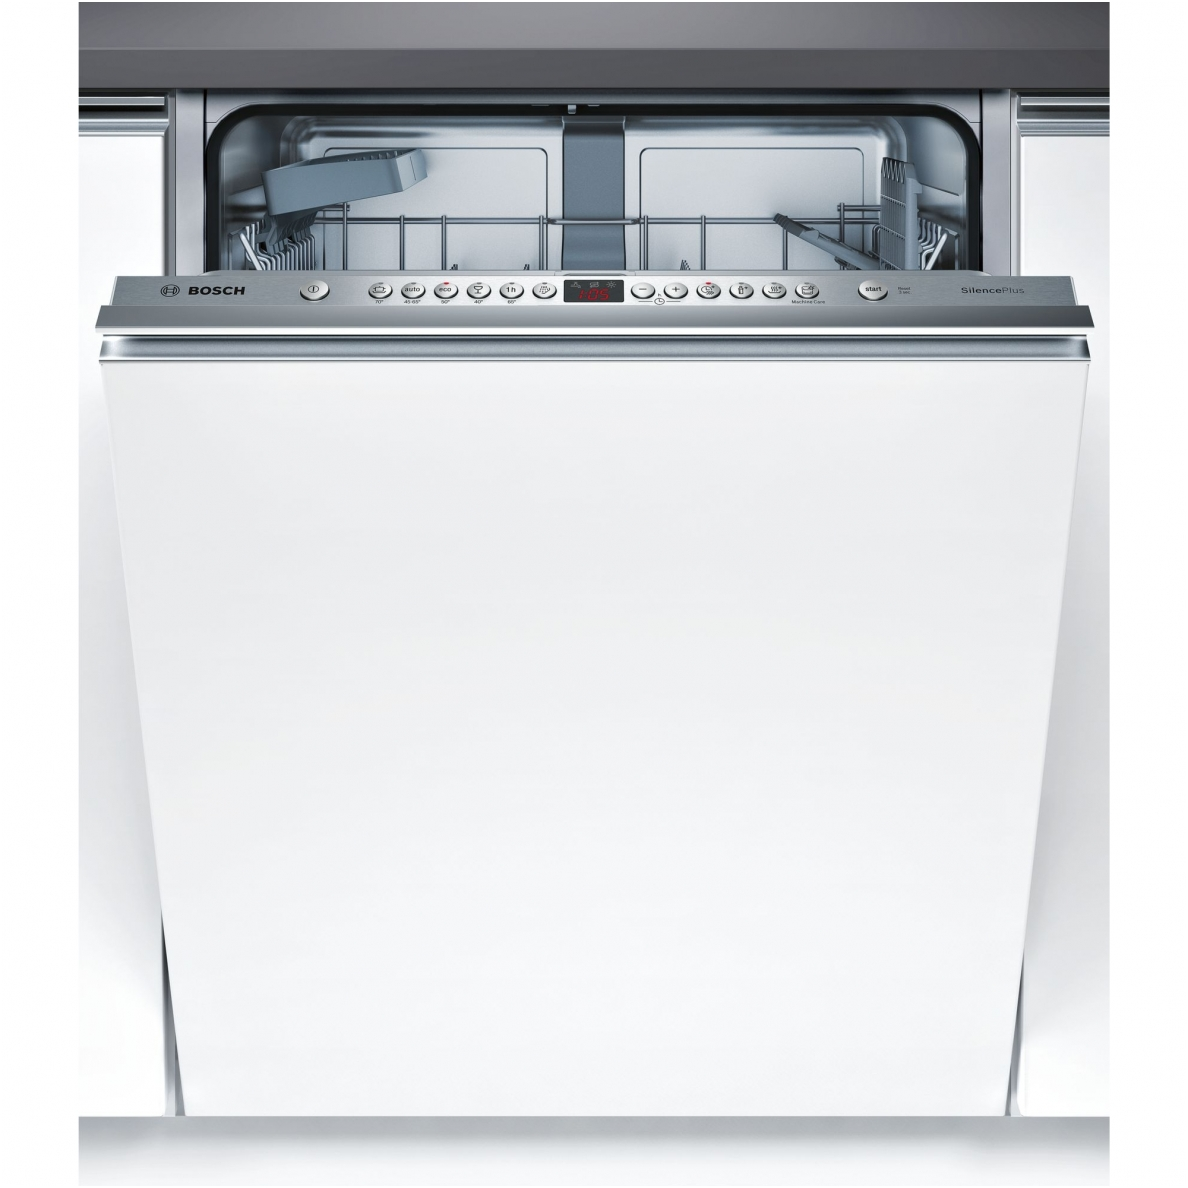 Bosch SilencePlus Dishwasher SMV46CX05E Fully Integrated, Width 60 cm, Number of place settings 13, Number of programs 6, A+++, Display Yes, AquaStop function, Stainless steel